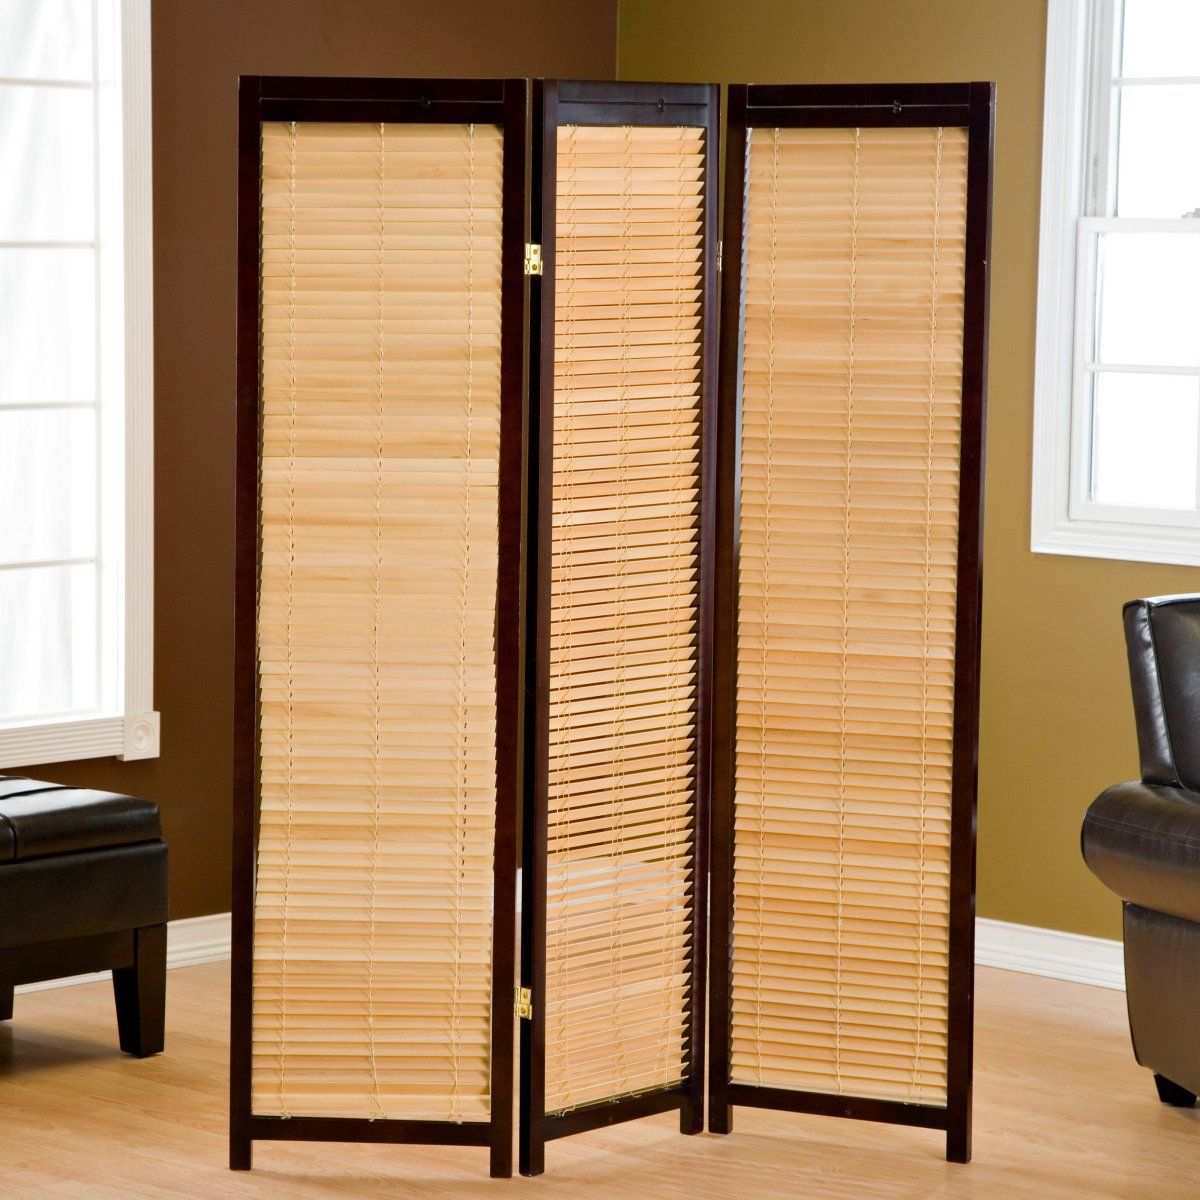 Tranquility Wooden Shutter Screen Room Divider in Espresso and ...